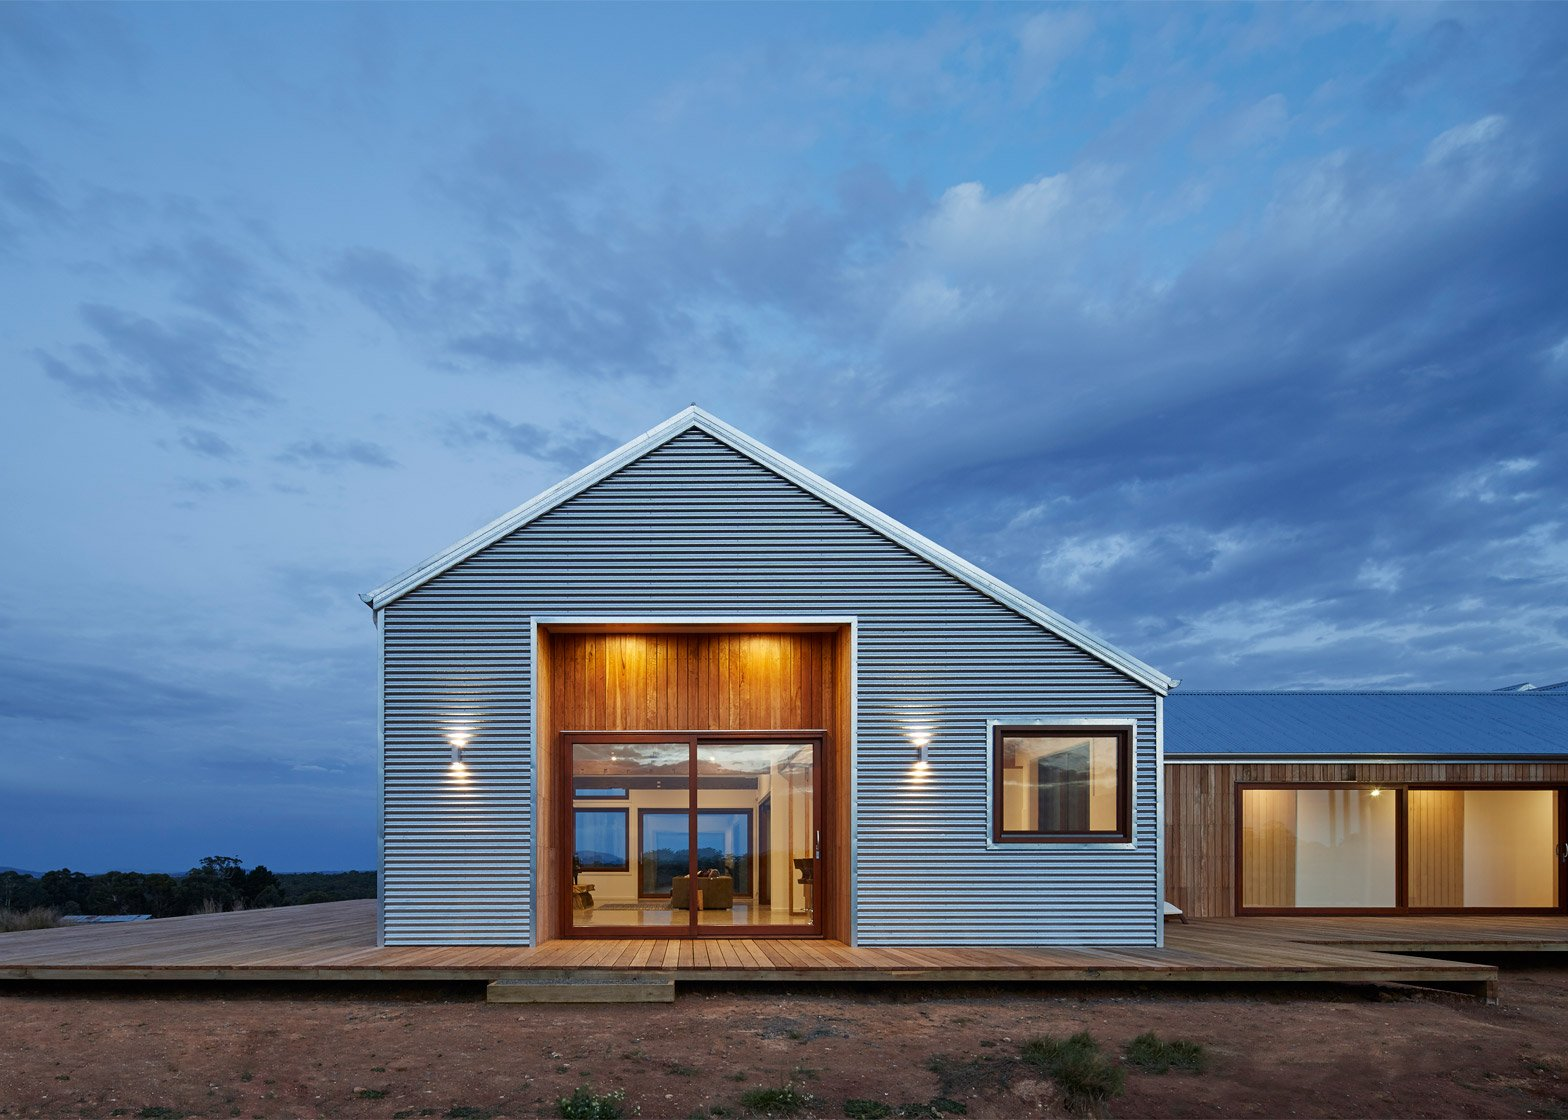 Corrugated steel provides durable facade for house by Glow Design Group